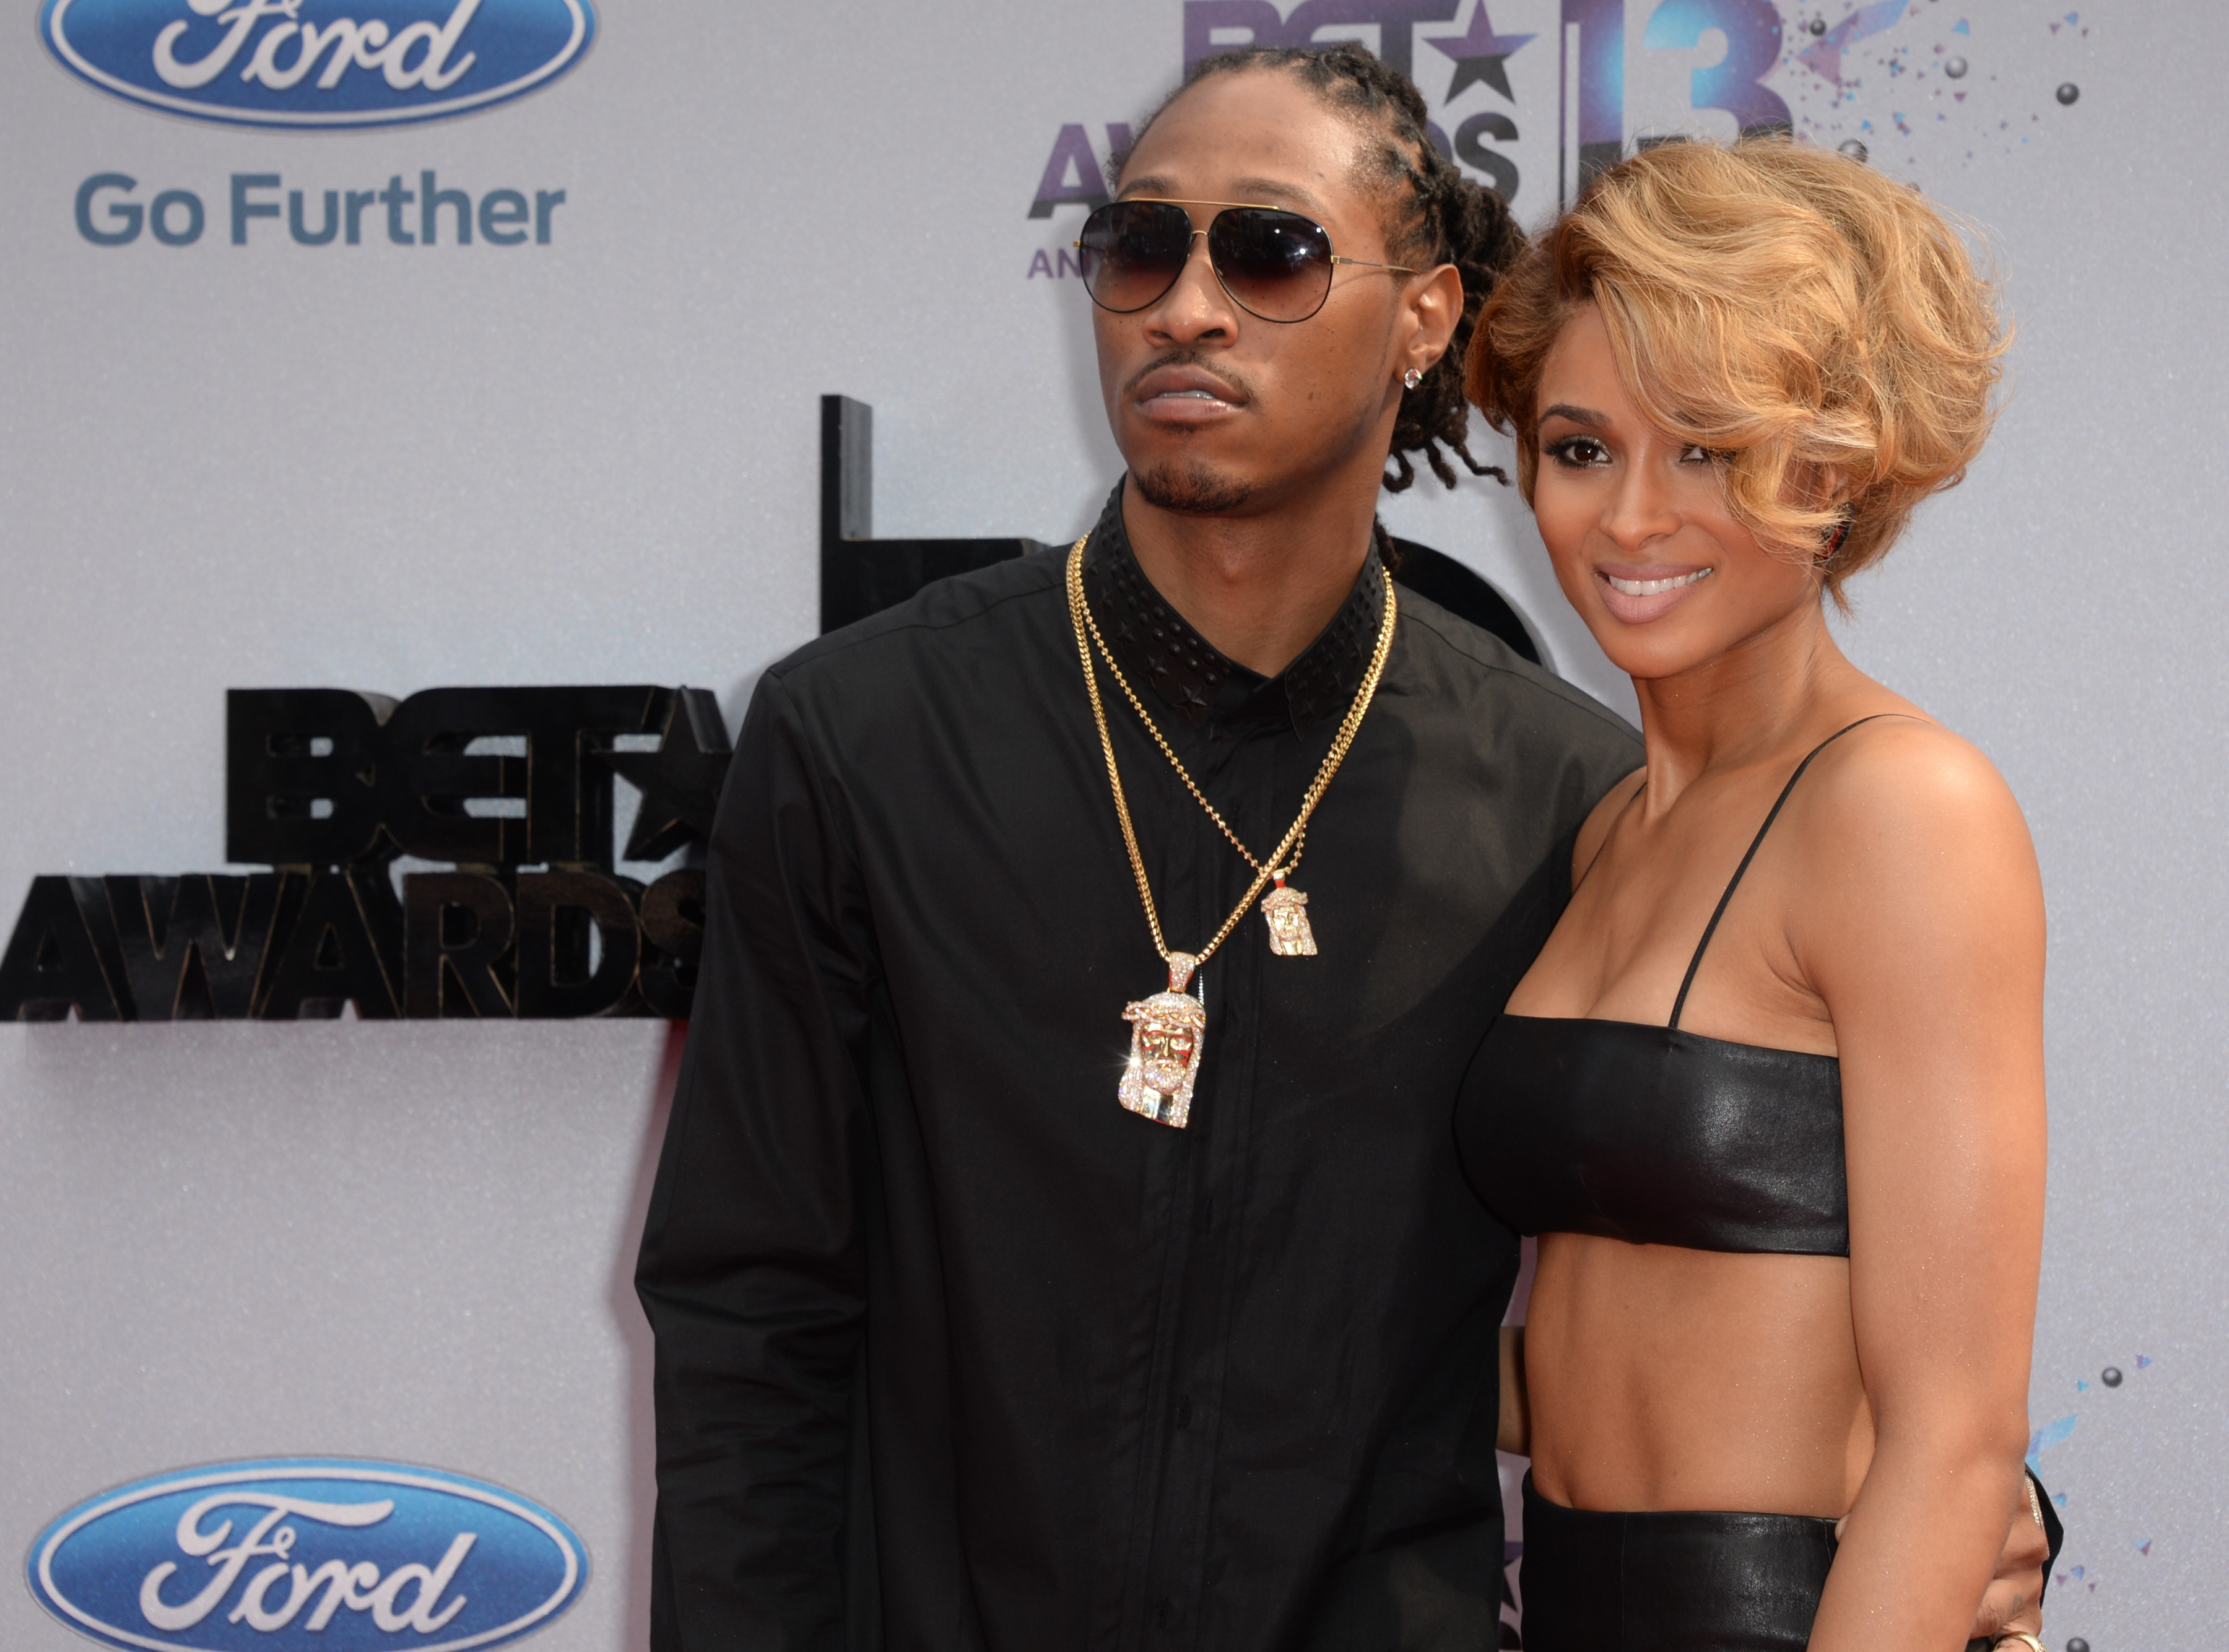 Future and Ciara at the BET Awards on June 30, 2013. (Photo by ROBYN BECK/AFP/Getty Images)